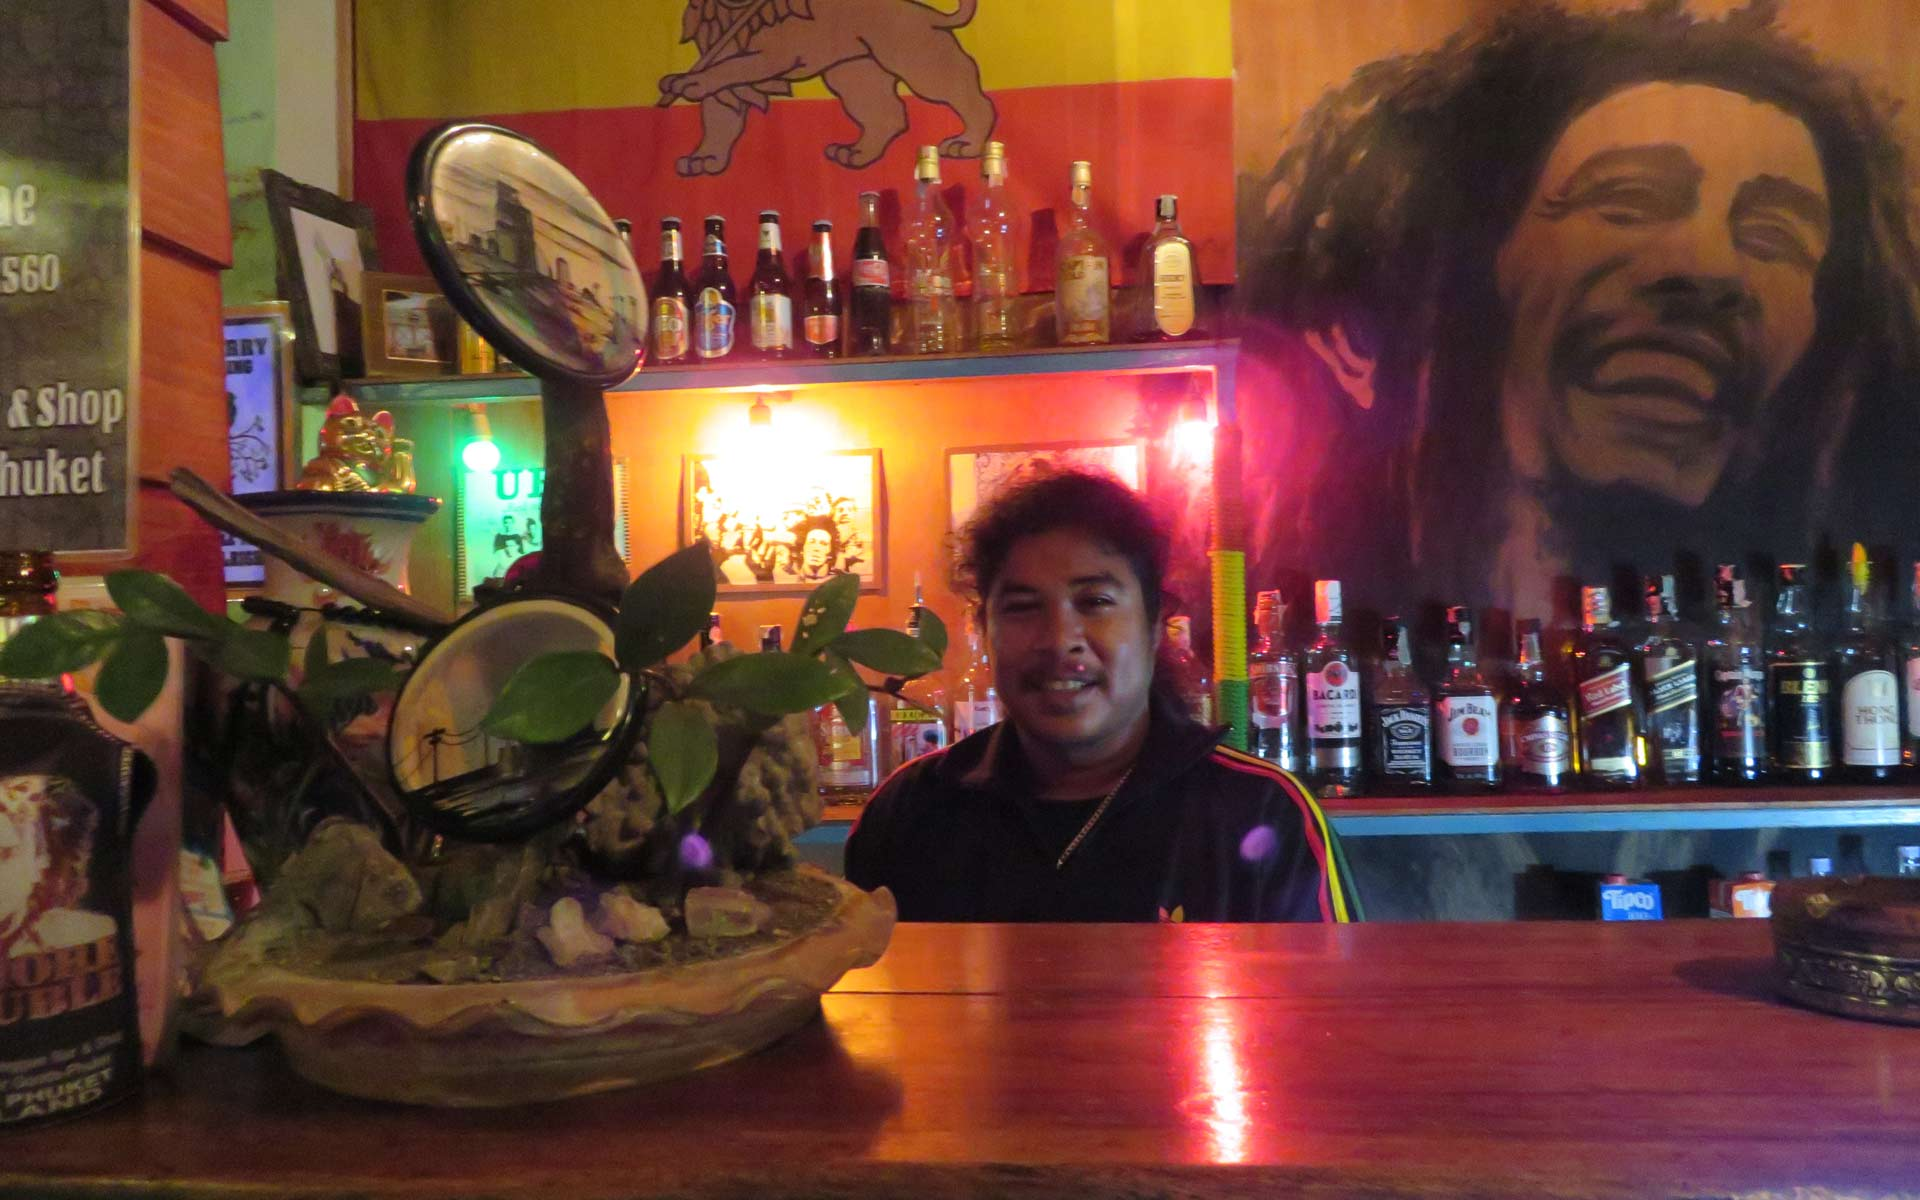 Boy Reggae Bar at the bar